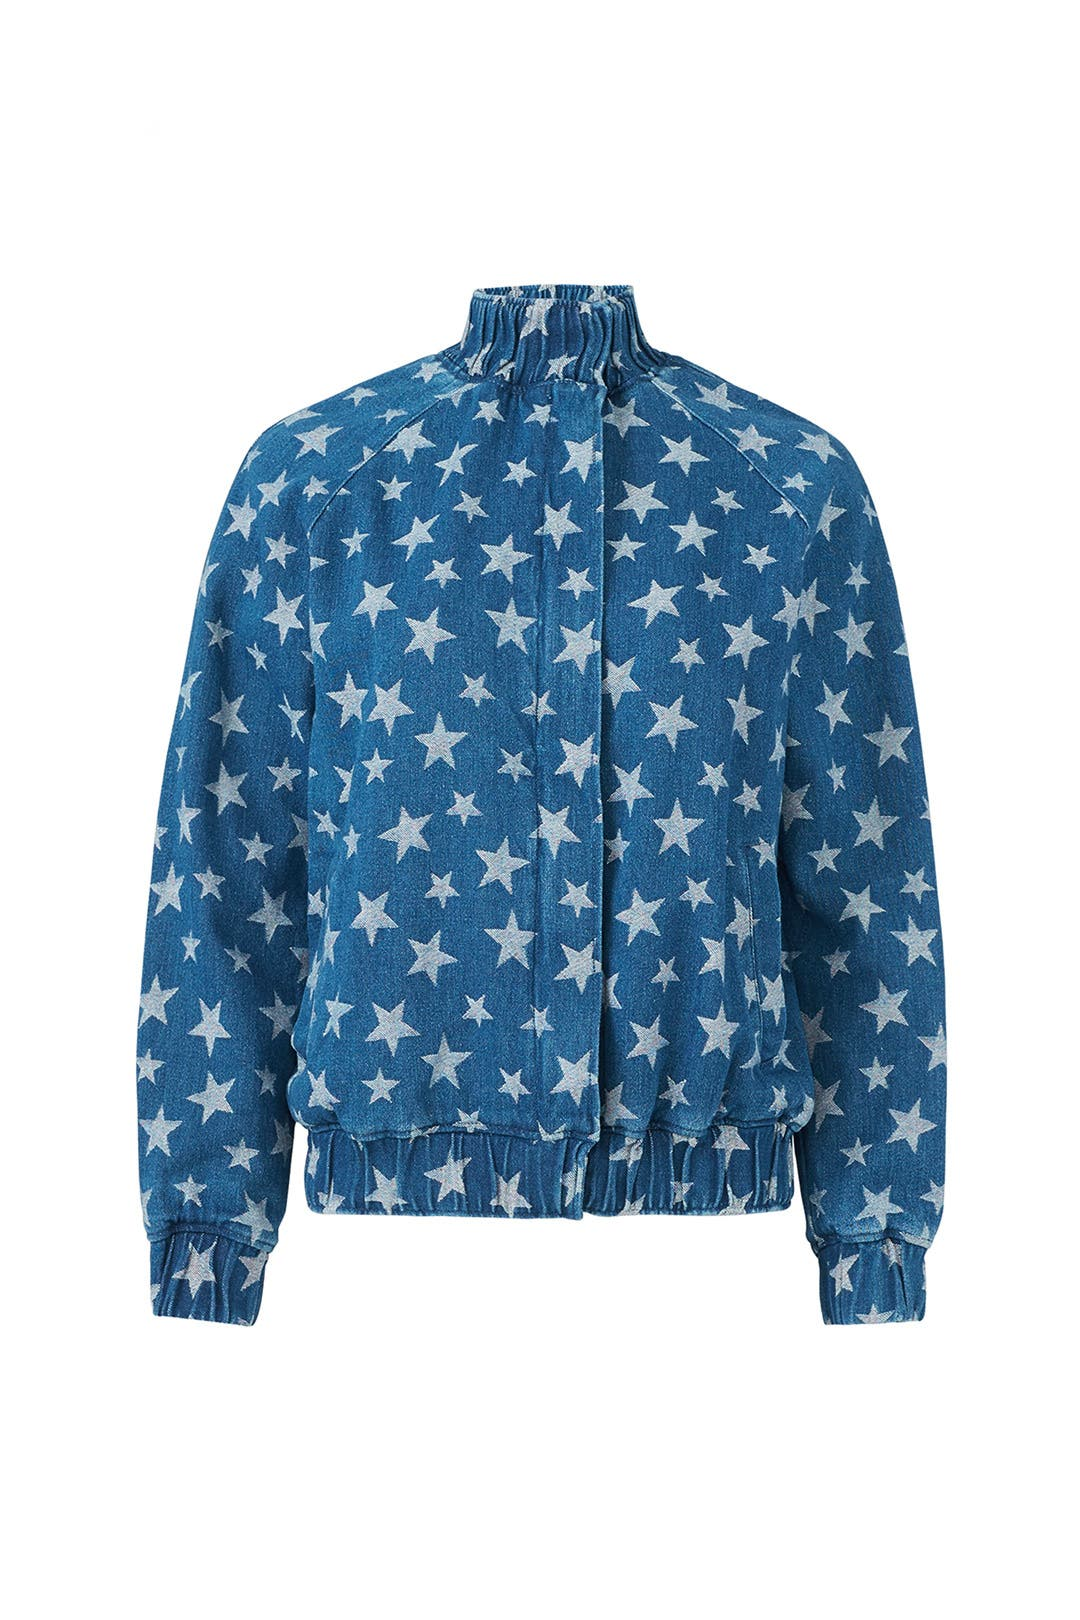 bceb3d39872 The Fifth Label. Read Reviews. Star Print Denim Bomber